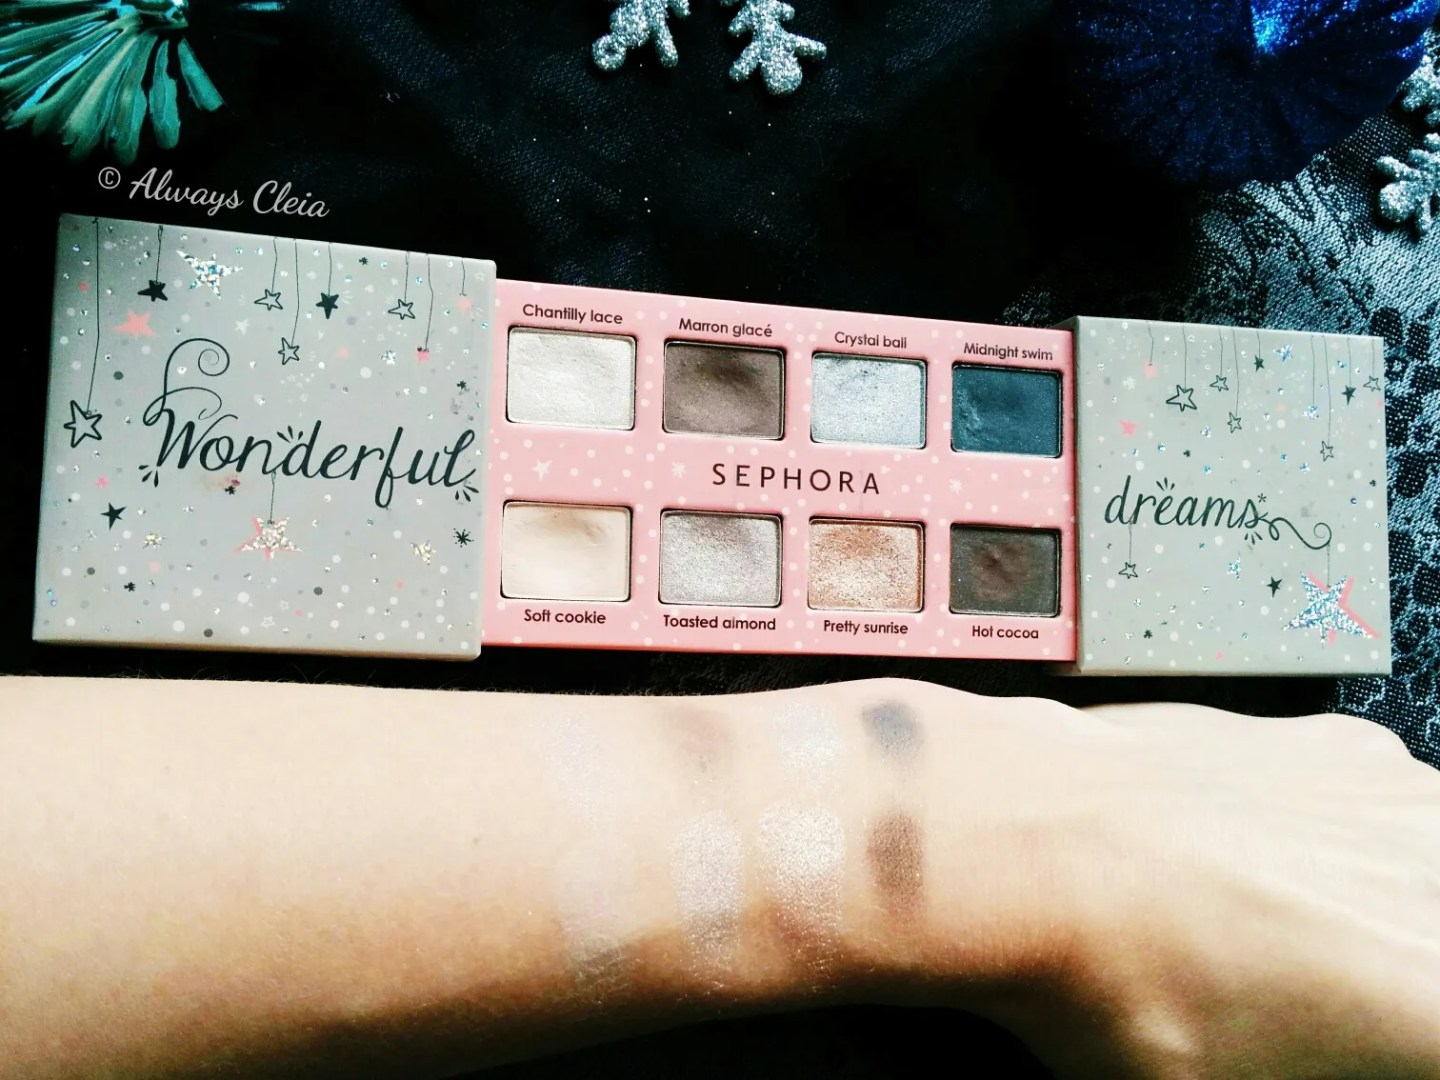 Holiday Products - Sephora Wonderful Dreams Eyeshadow Palette Swatches